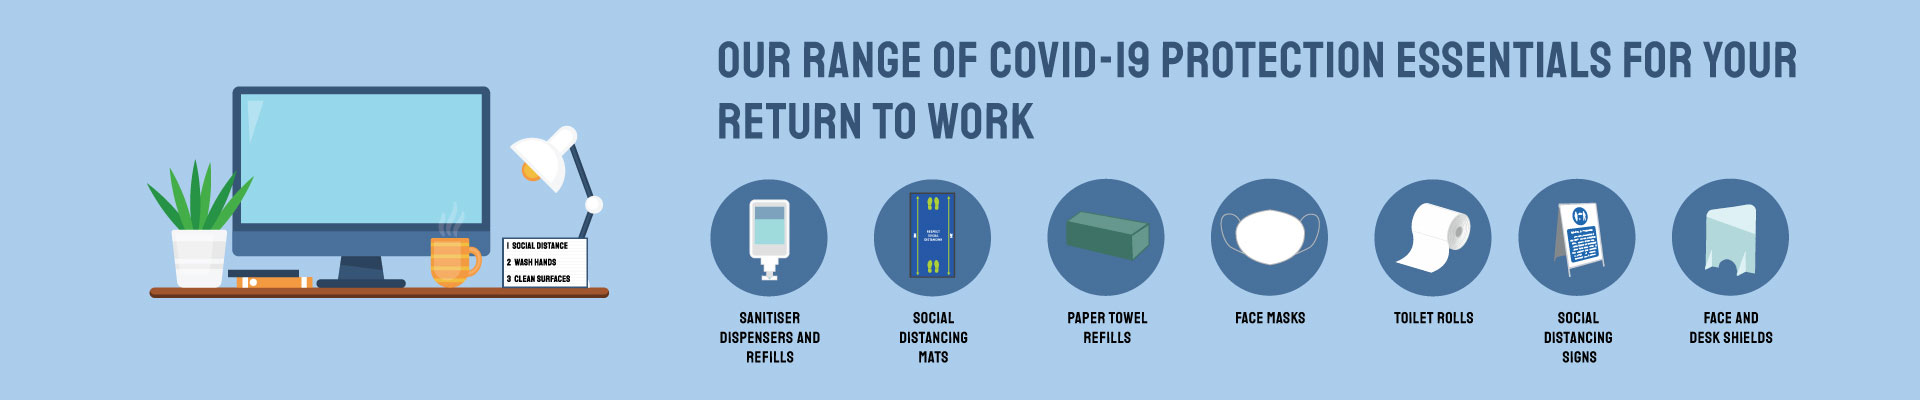 OUR RANGE OF COVID-19 PROTECTION ESSENTIALS FOR YOUR RETURN TO WORK